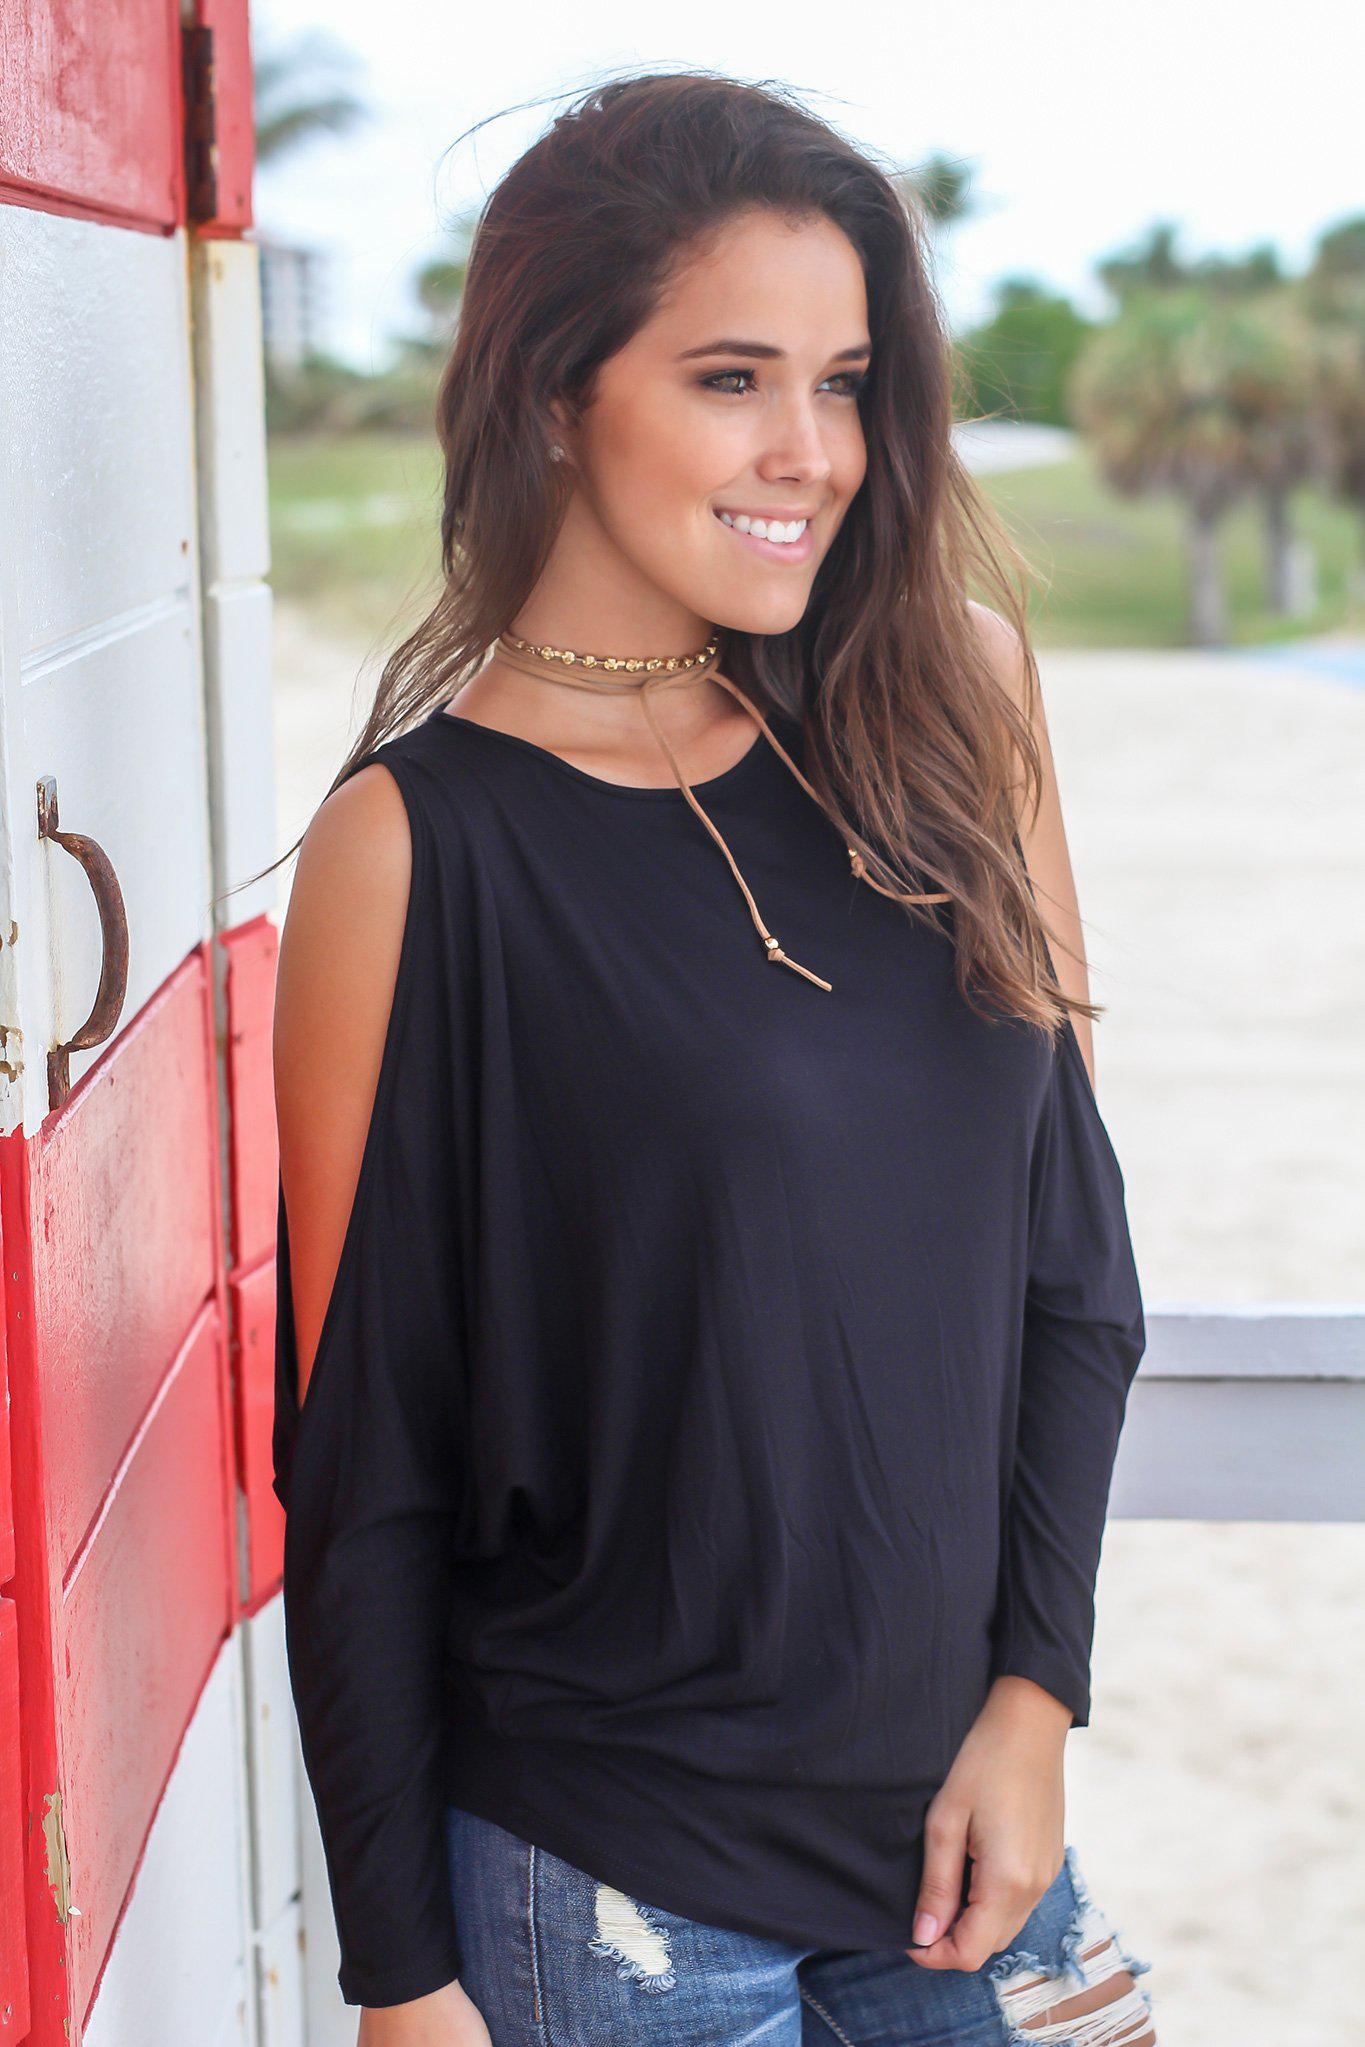 women's trendy tops